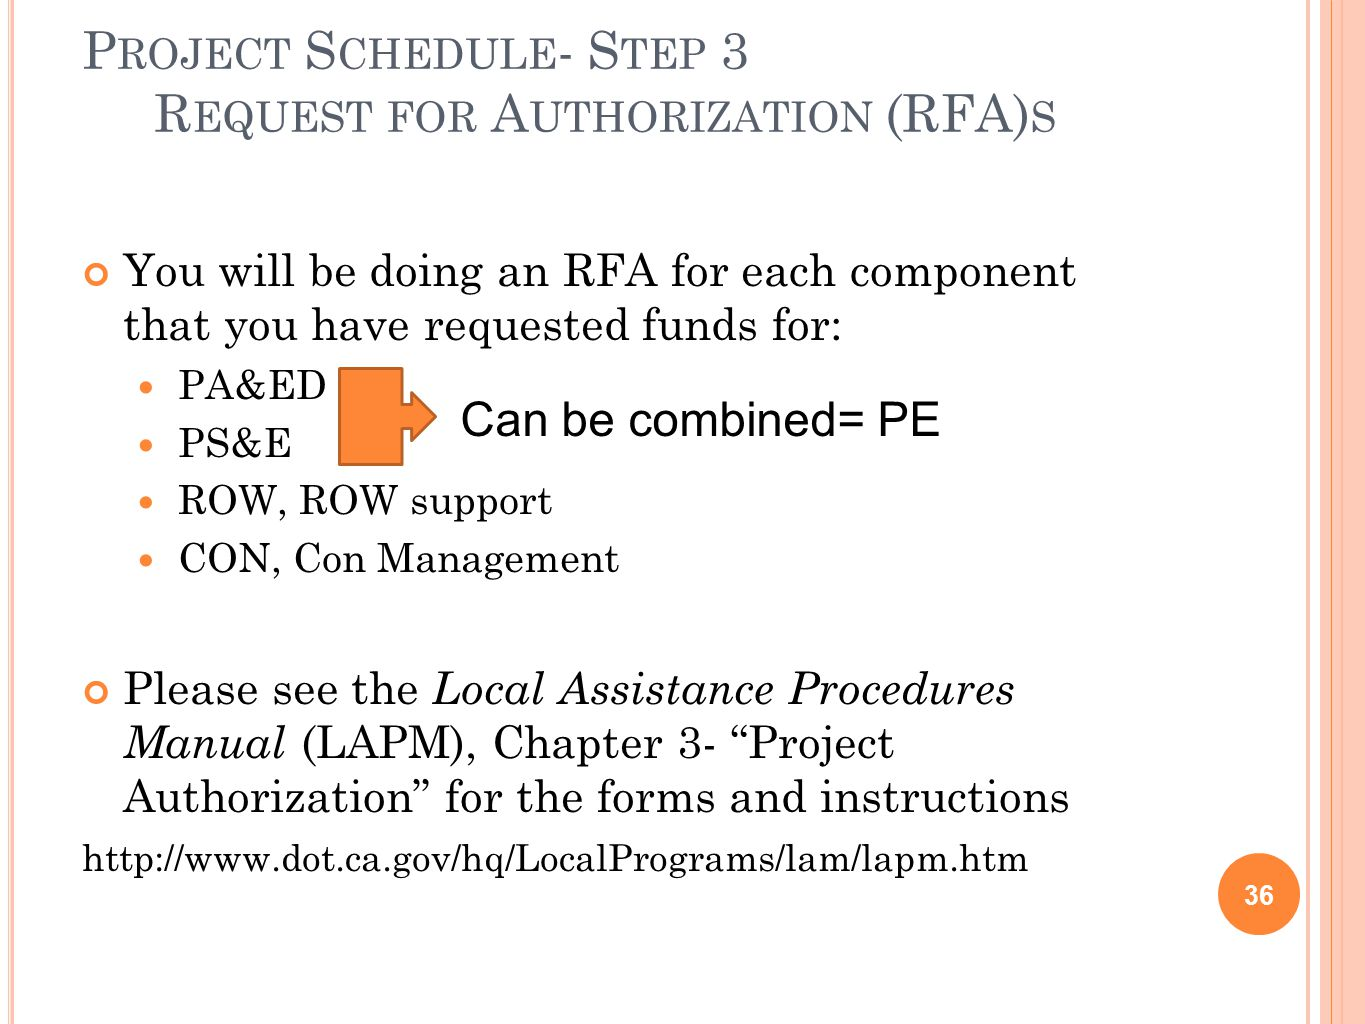 P ROJECT S CHEDULE - S TEP 3 R EQUEST FOR A UTHORIZATION (RFA) S 36 You will be doing an RFA for each component that you have requested funds for: PA&ED PS&E ROW, ROW support CON, Con Management Please see the Local Assistance Procedures Manual (LAPM), Chapter 3- Project Authorization for the forms and instructions http://www.dot.ca.gov/hq/LocalPrograms/lam/lapm.htm Can be combined= PE